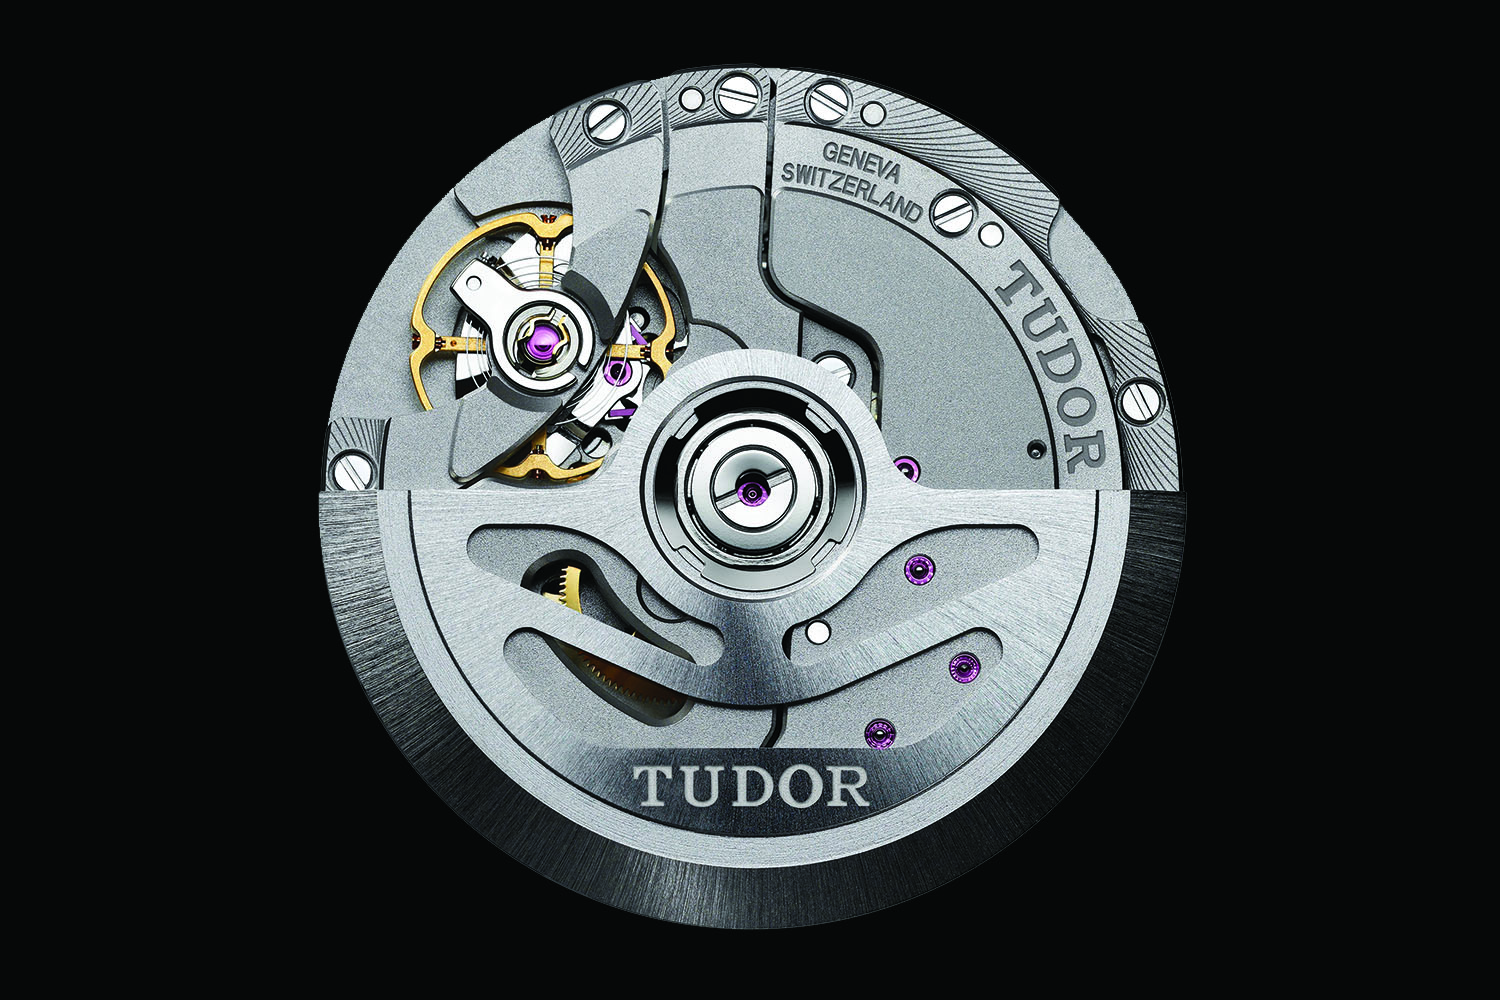 Tudor MT5612 Manufacture movement